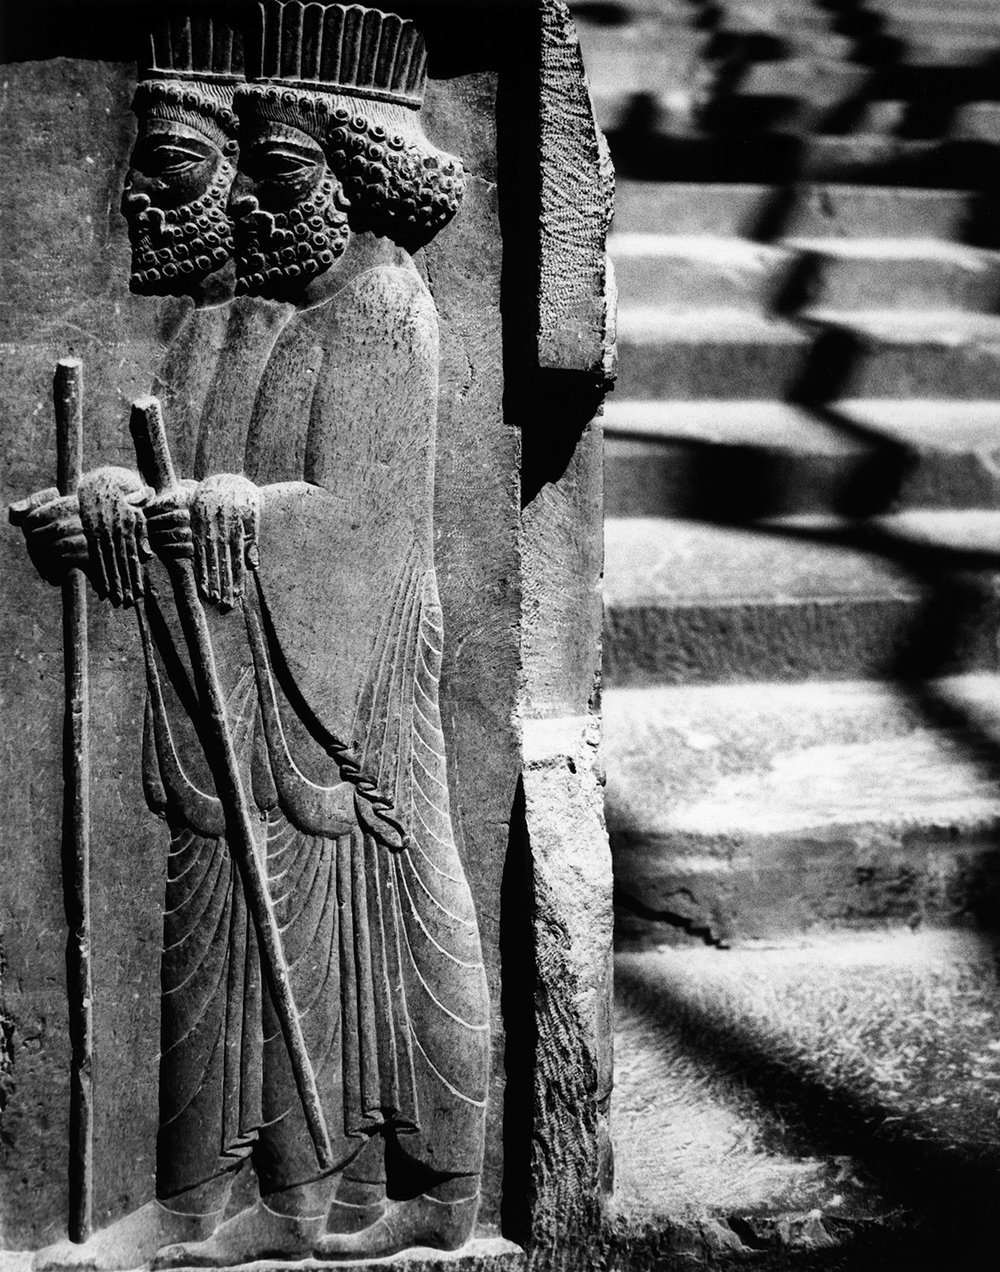 Persian courtiers on the processional stairway, Persepolis